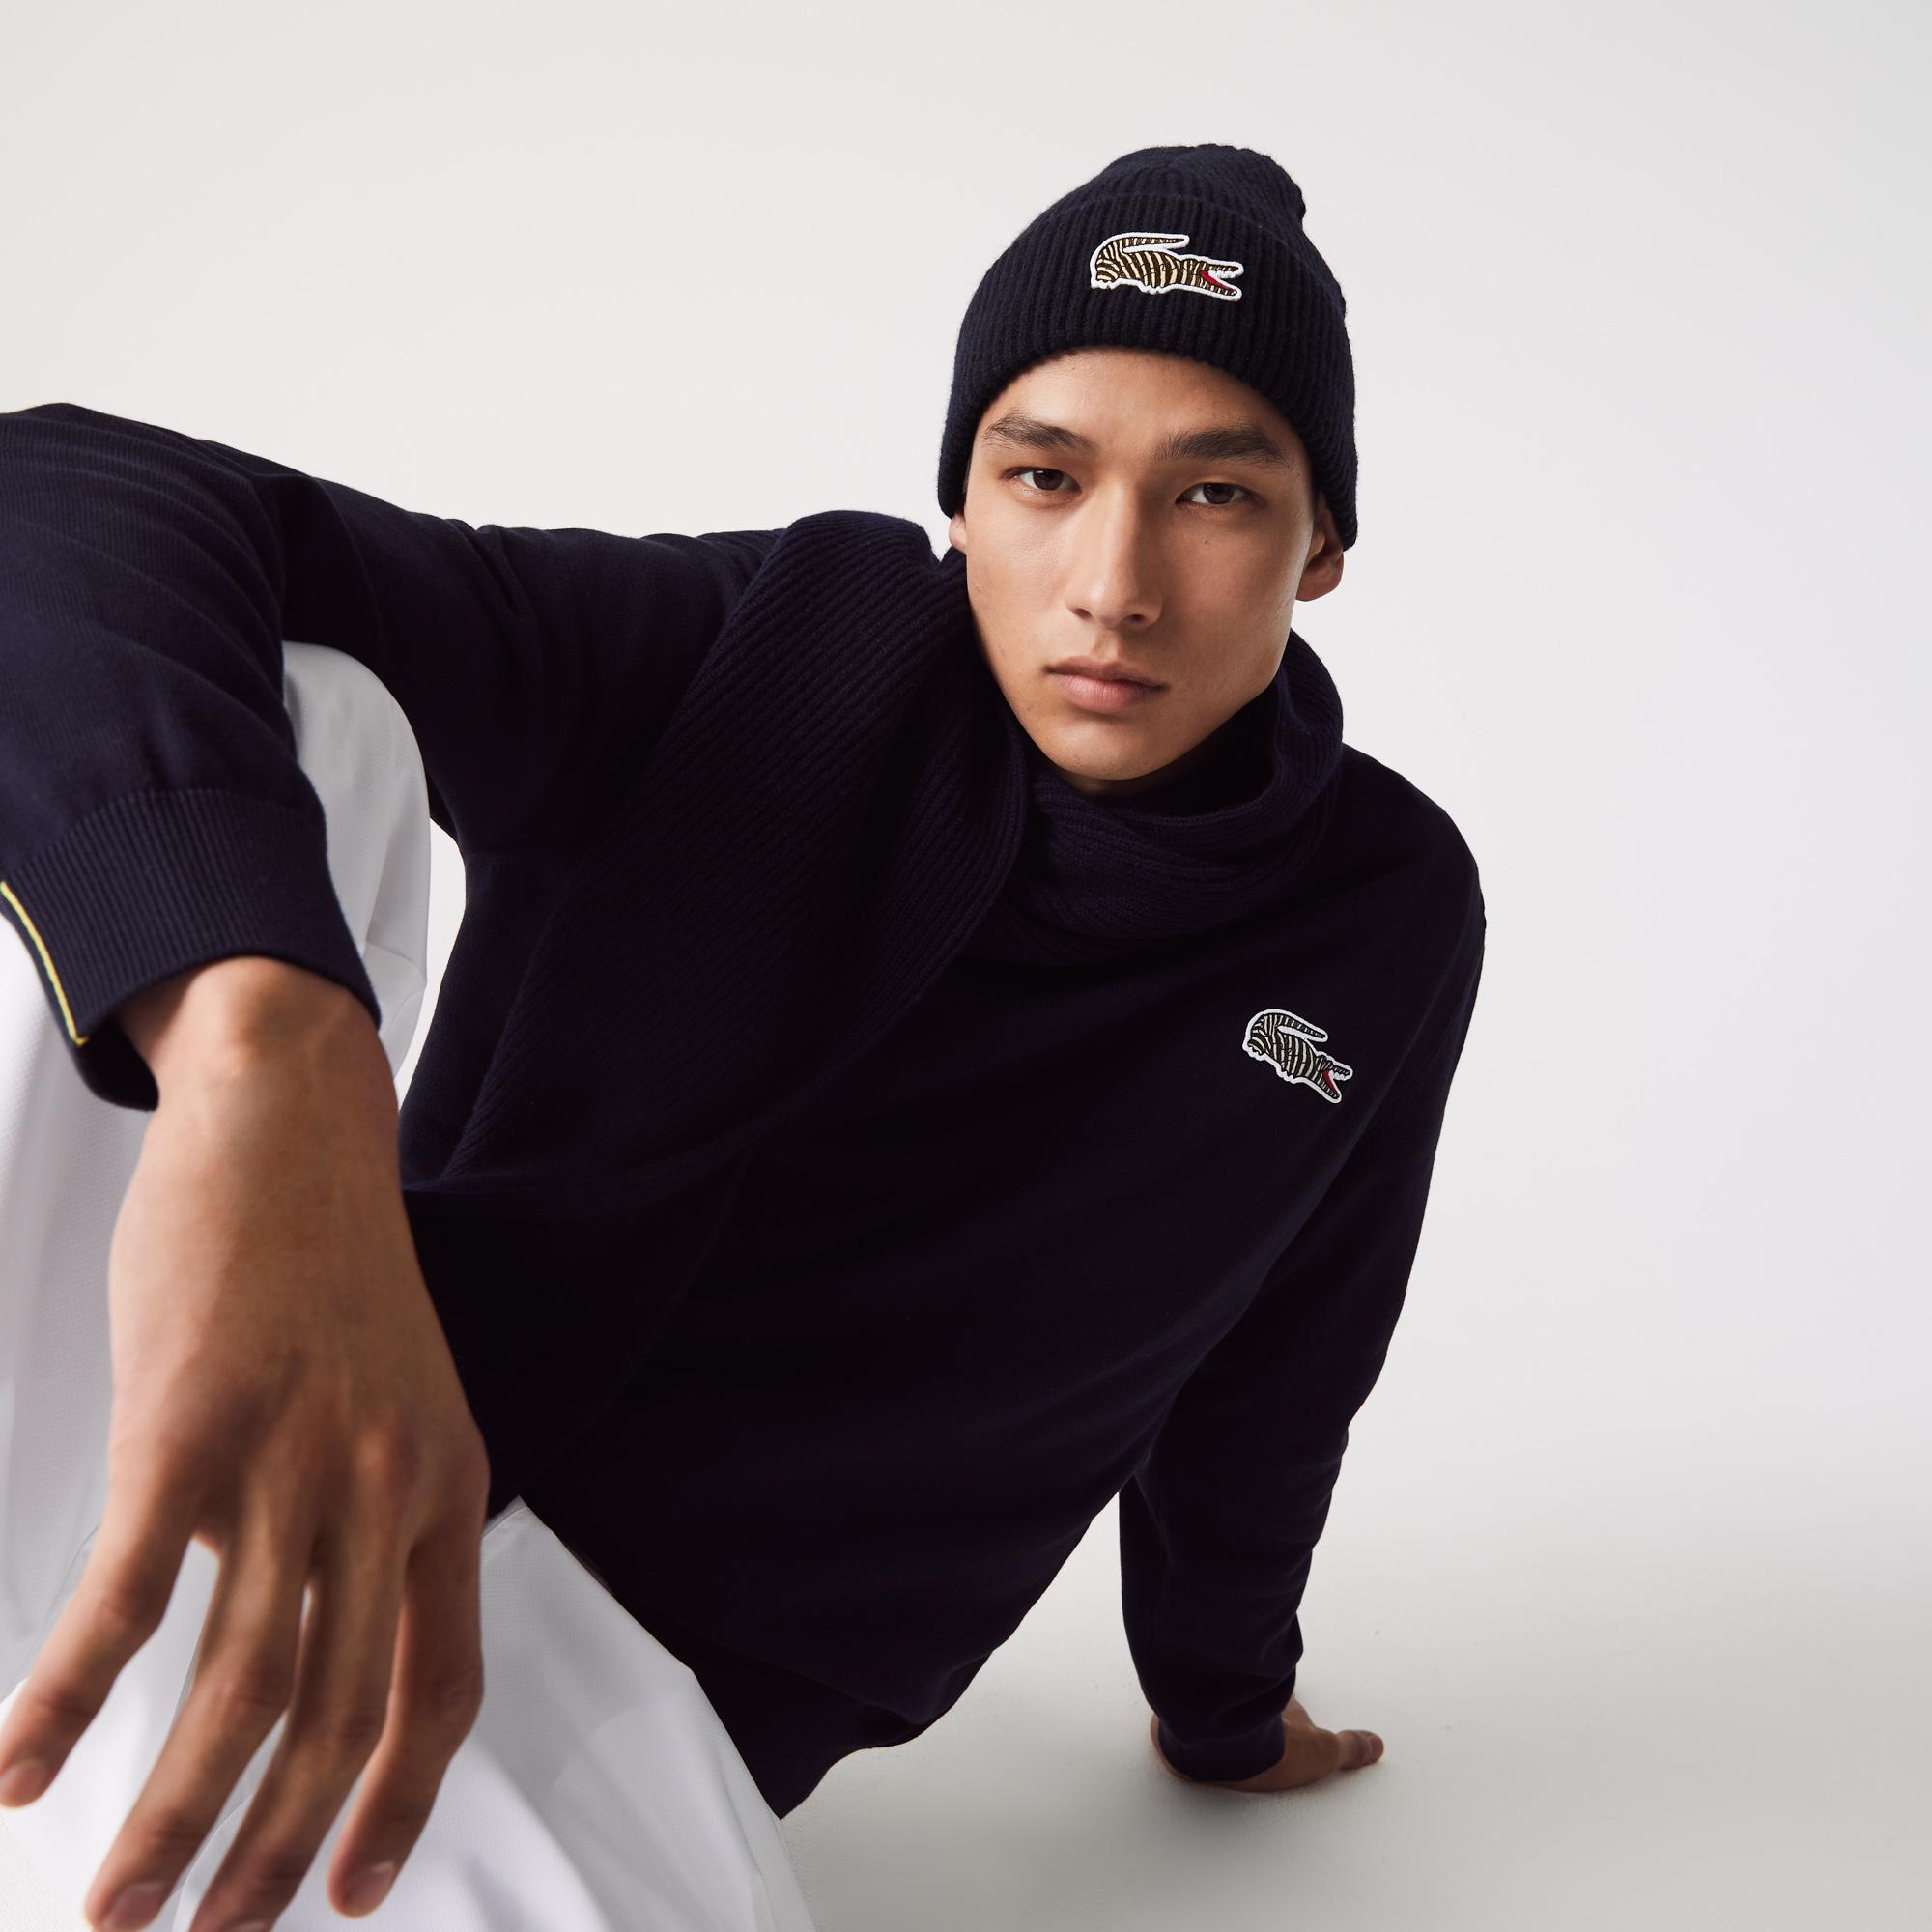 Lacoste x National Geographic Unisex Yün Lacivert Bere